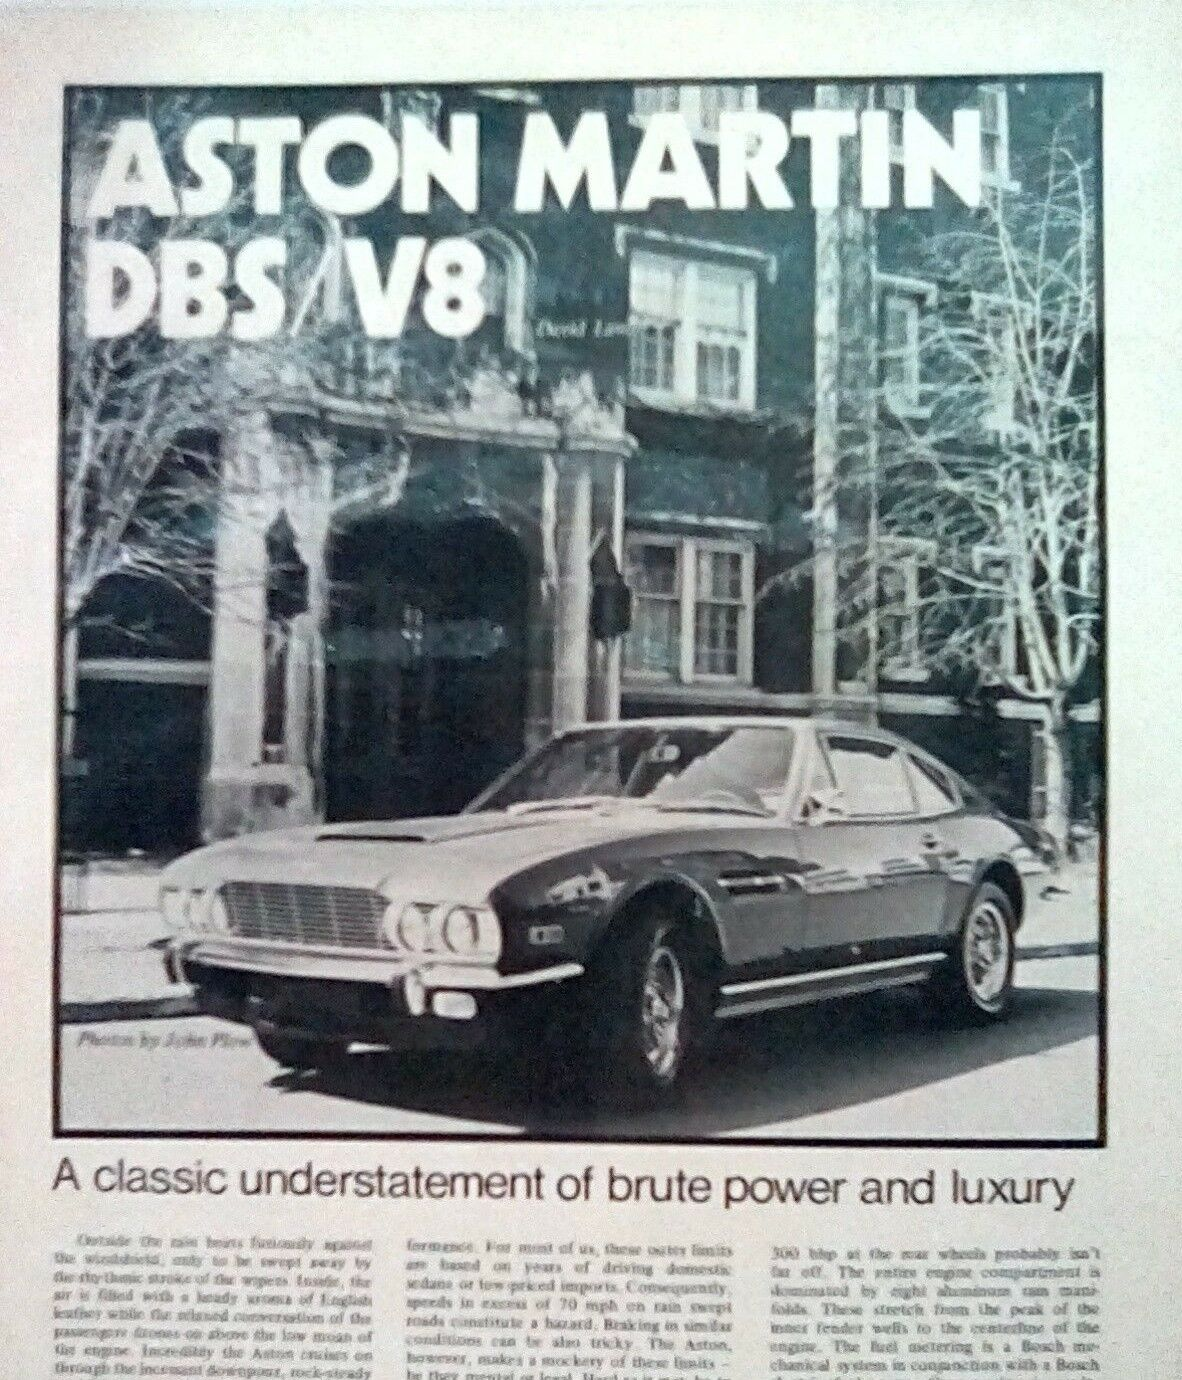 ASTON MARTIN V8 SALOON CARB MODEL CHASSIS NO V811001 TO V812031 PARTS MANUAL